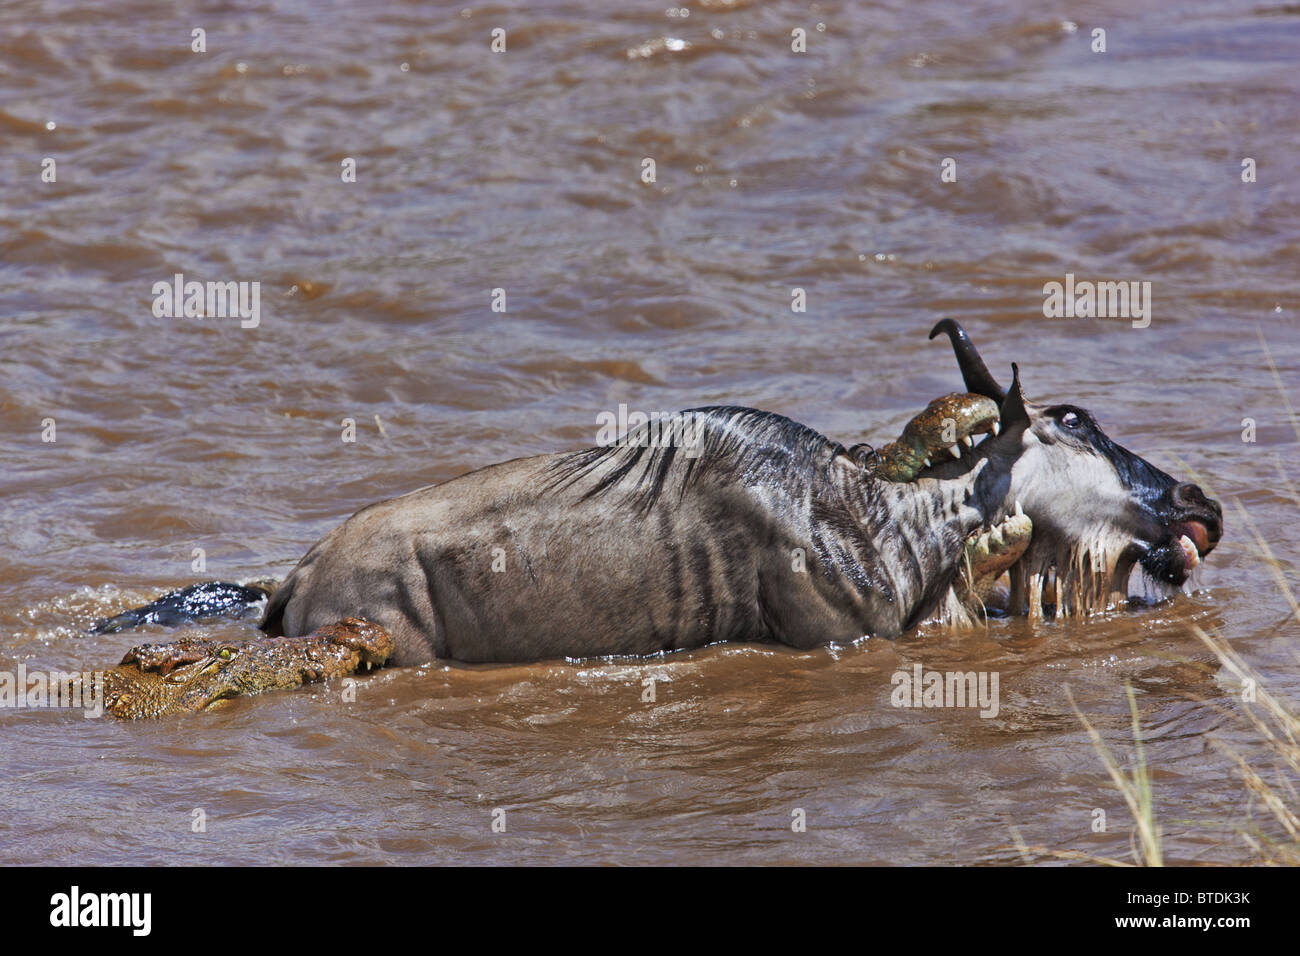 Crocodile (Crocodylus niloticus) Catching Blue Wildebeest (Connochaetes taurinus) in the Masai Mara National Reserve. - Stock Image